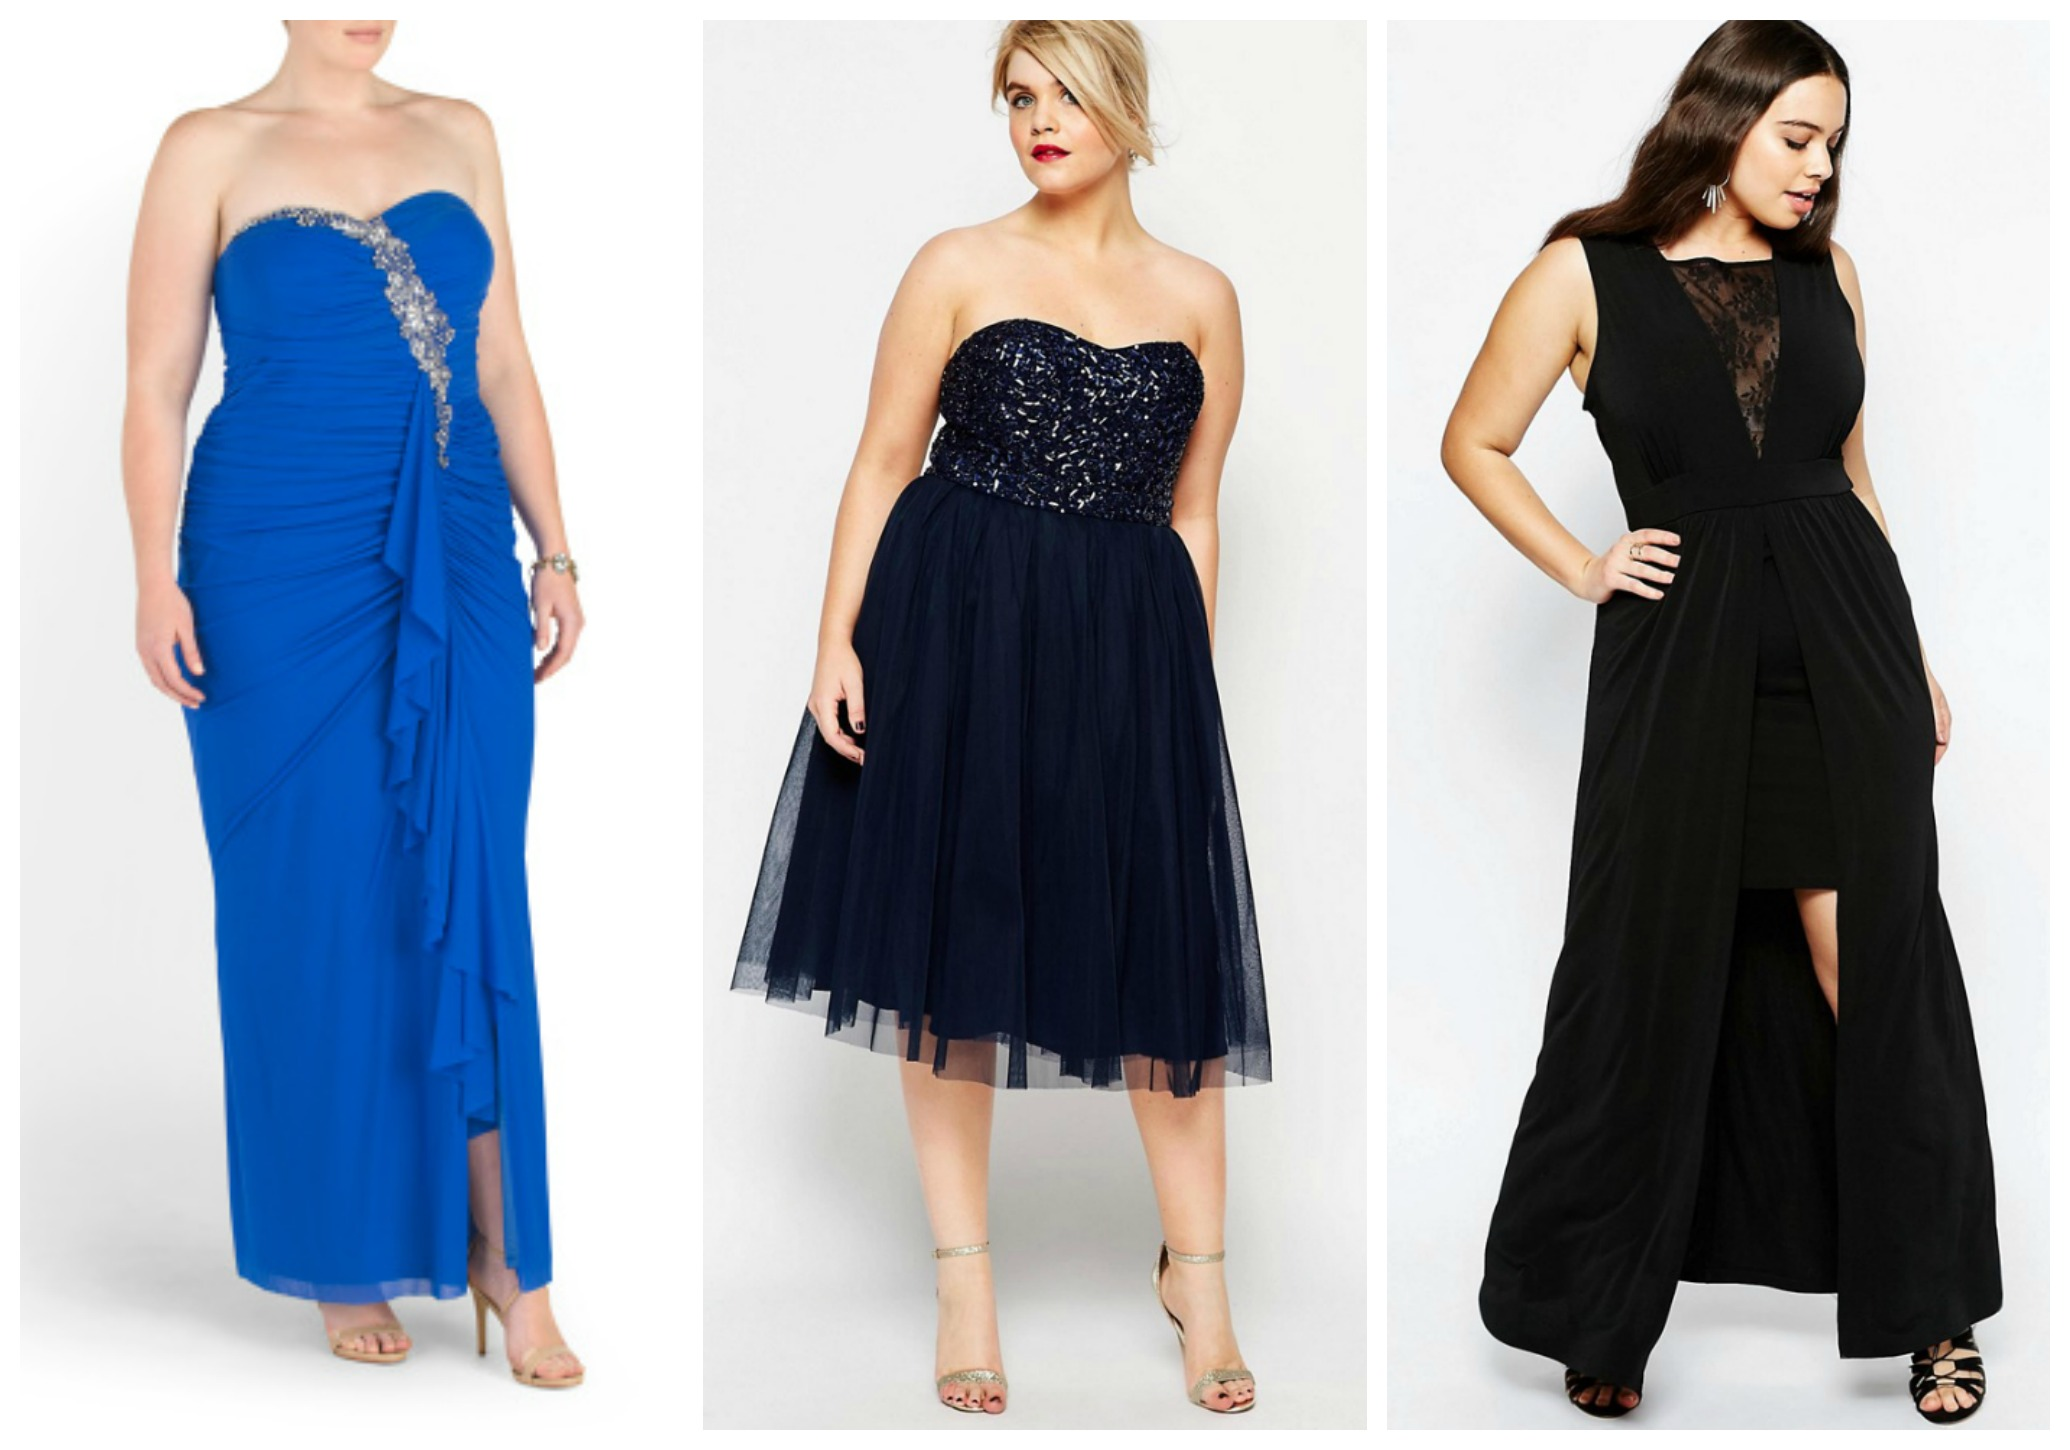 10 Red Carpet Worthy Plus Size Prom Dresses Under $100 | Stylish ...